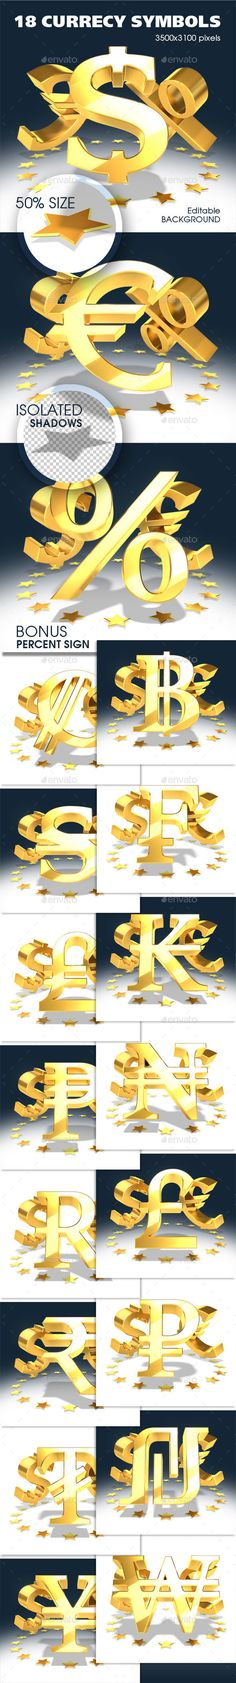 Currency Symbols Fonts Logos Icons Pinterest Currency Symbol